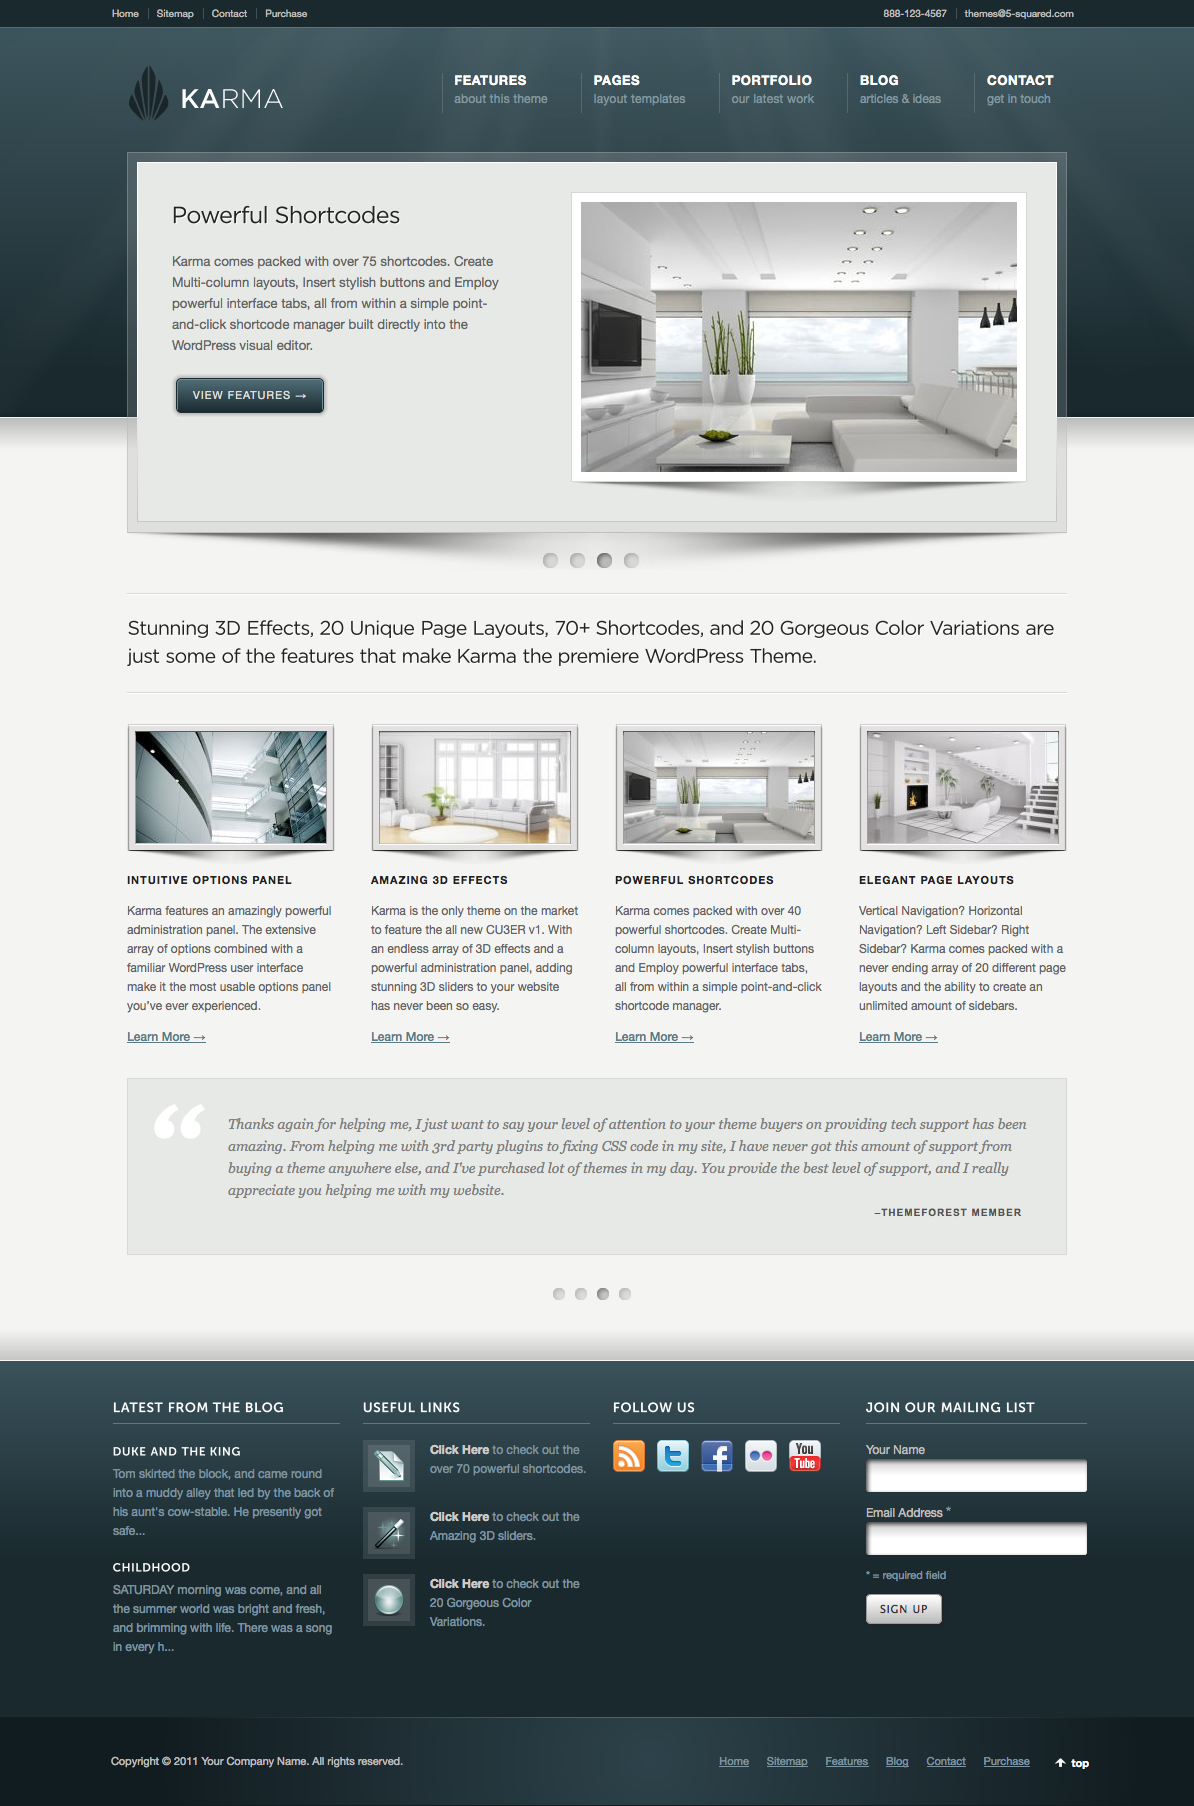 Karma - Clean and Modern WordPress Theme - Stunning 3D Effects, 20 Unique Page Layouts, 70+ Shortcodes, and 20 Gorgeous Color Variations are just some of the features that make Karma the premiere WordPress Theme.